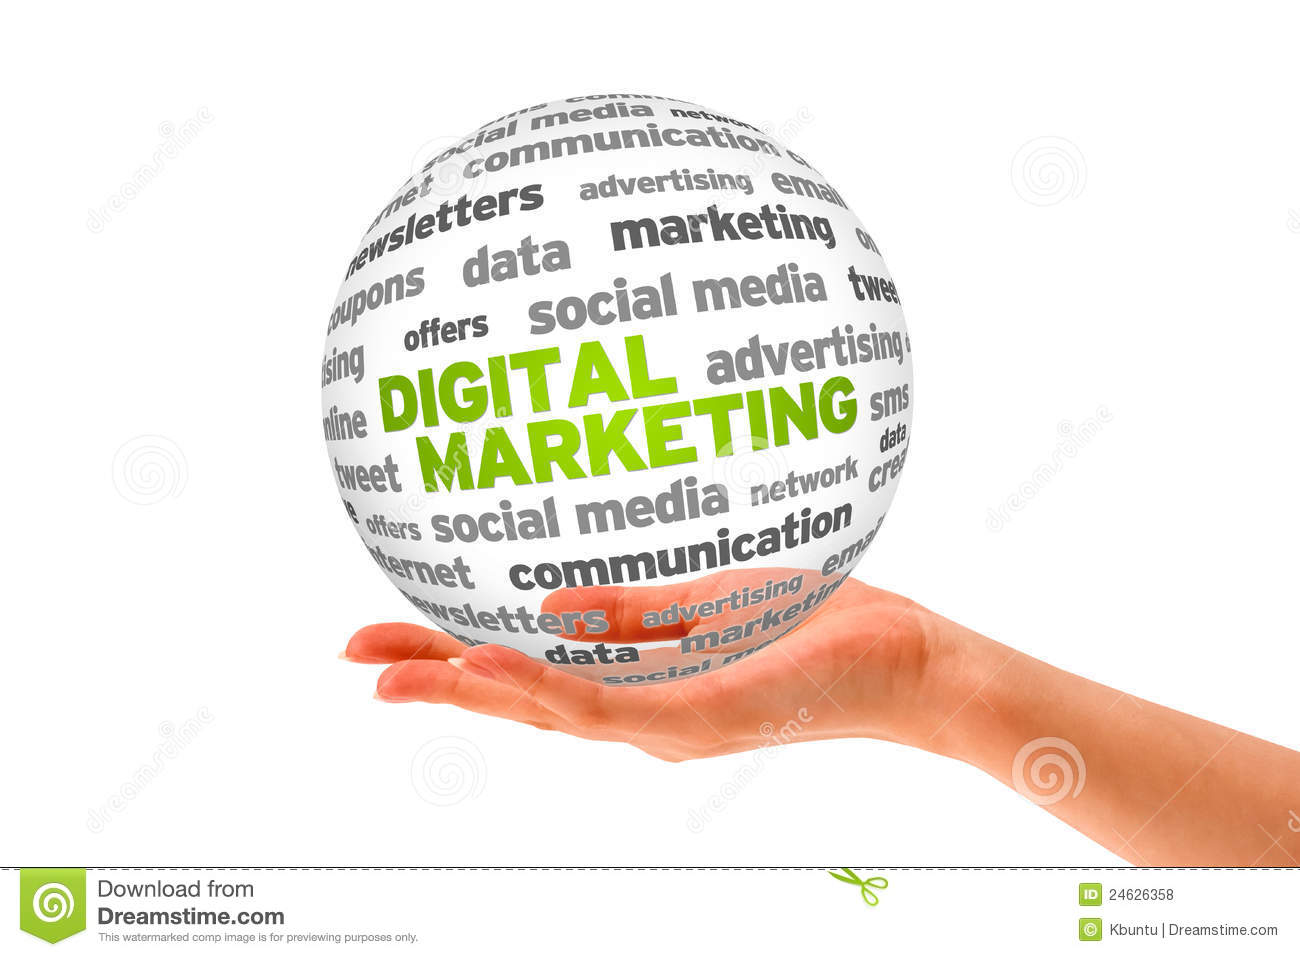 Digital Marketing Royalty Free Stock Photos  Image: 24626358